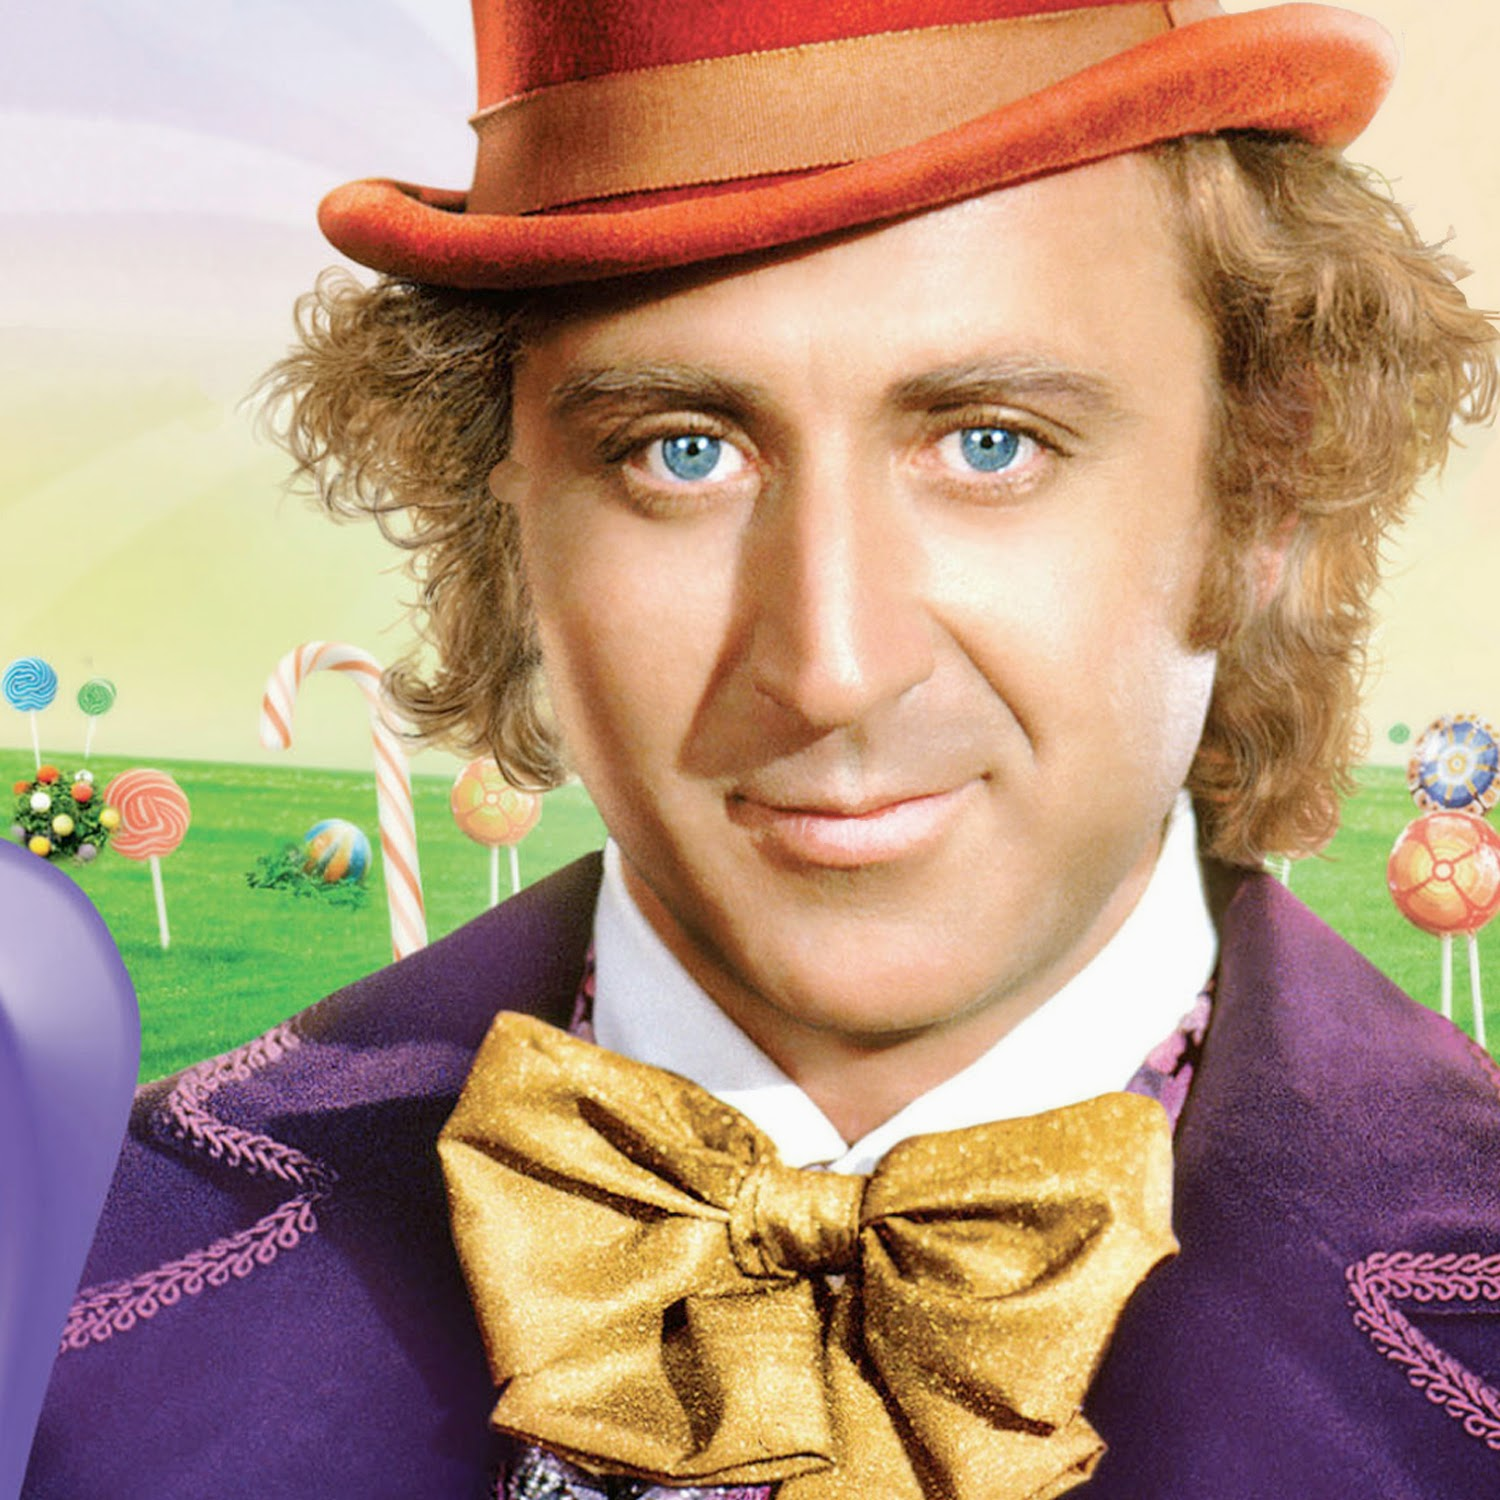 Gene Wilder as Willy Wonka (1971)